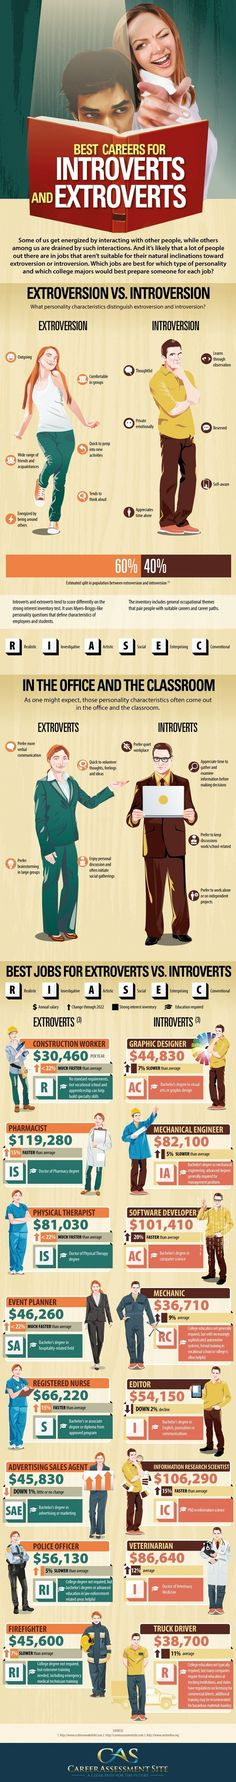 introvert extrovert infographic